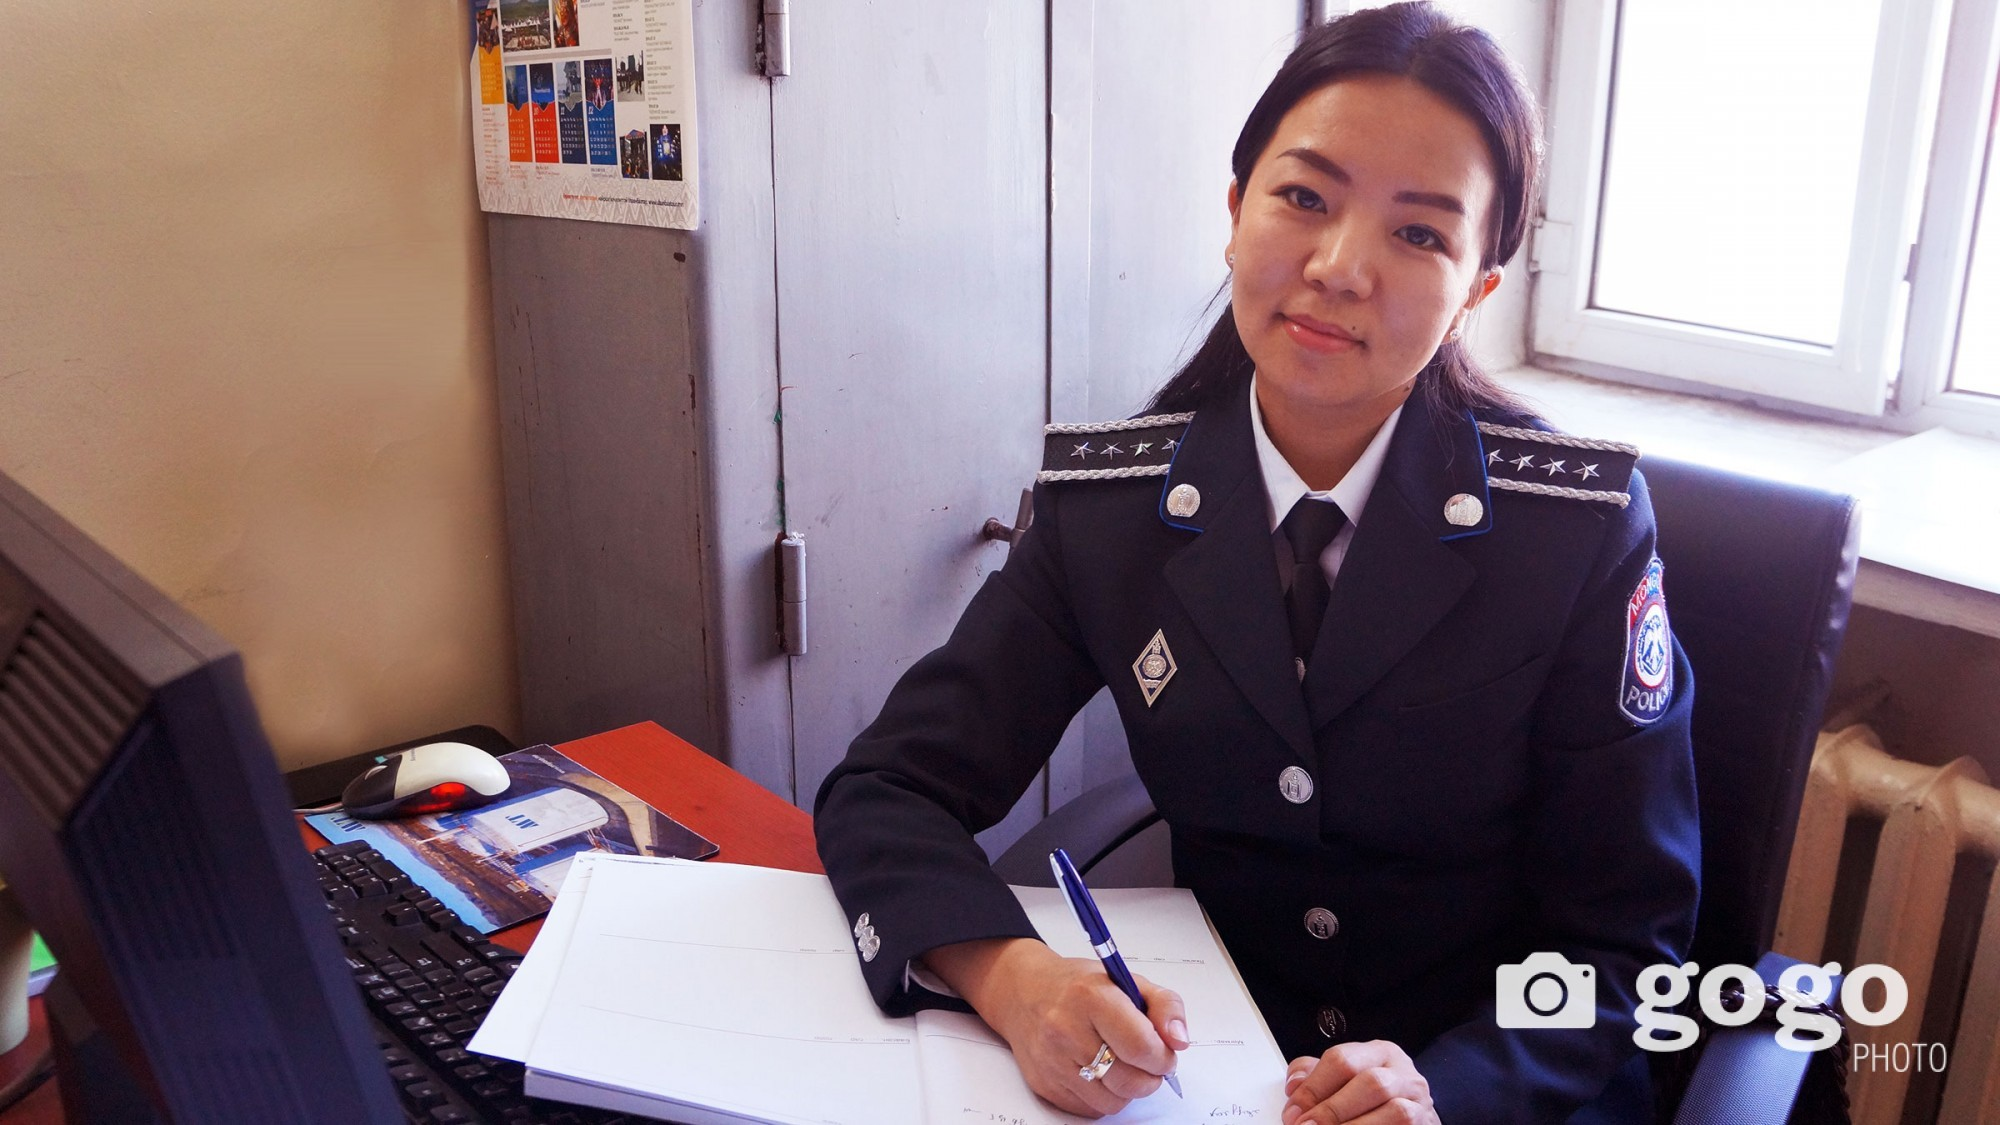 A.Munhsuvd is a senior police inspector of Chingeltei district. She wants more peace in Mongolia and she wants every citizens to know their rights and duties.